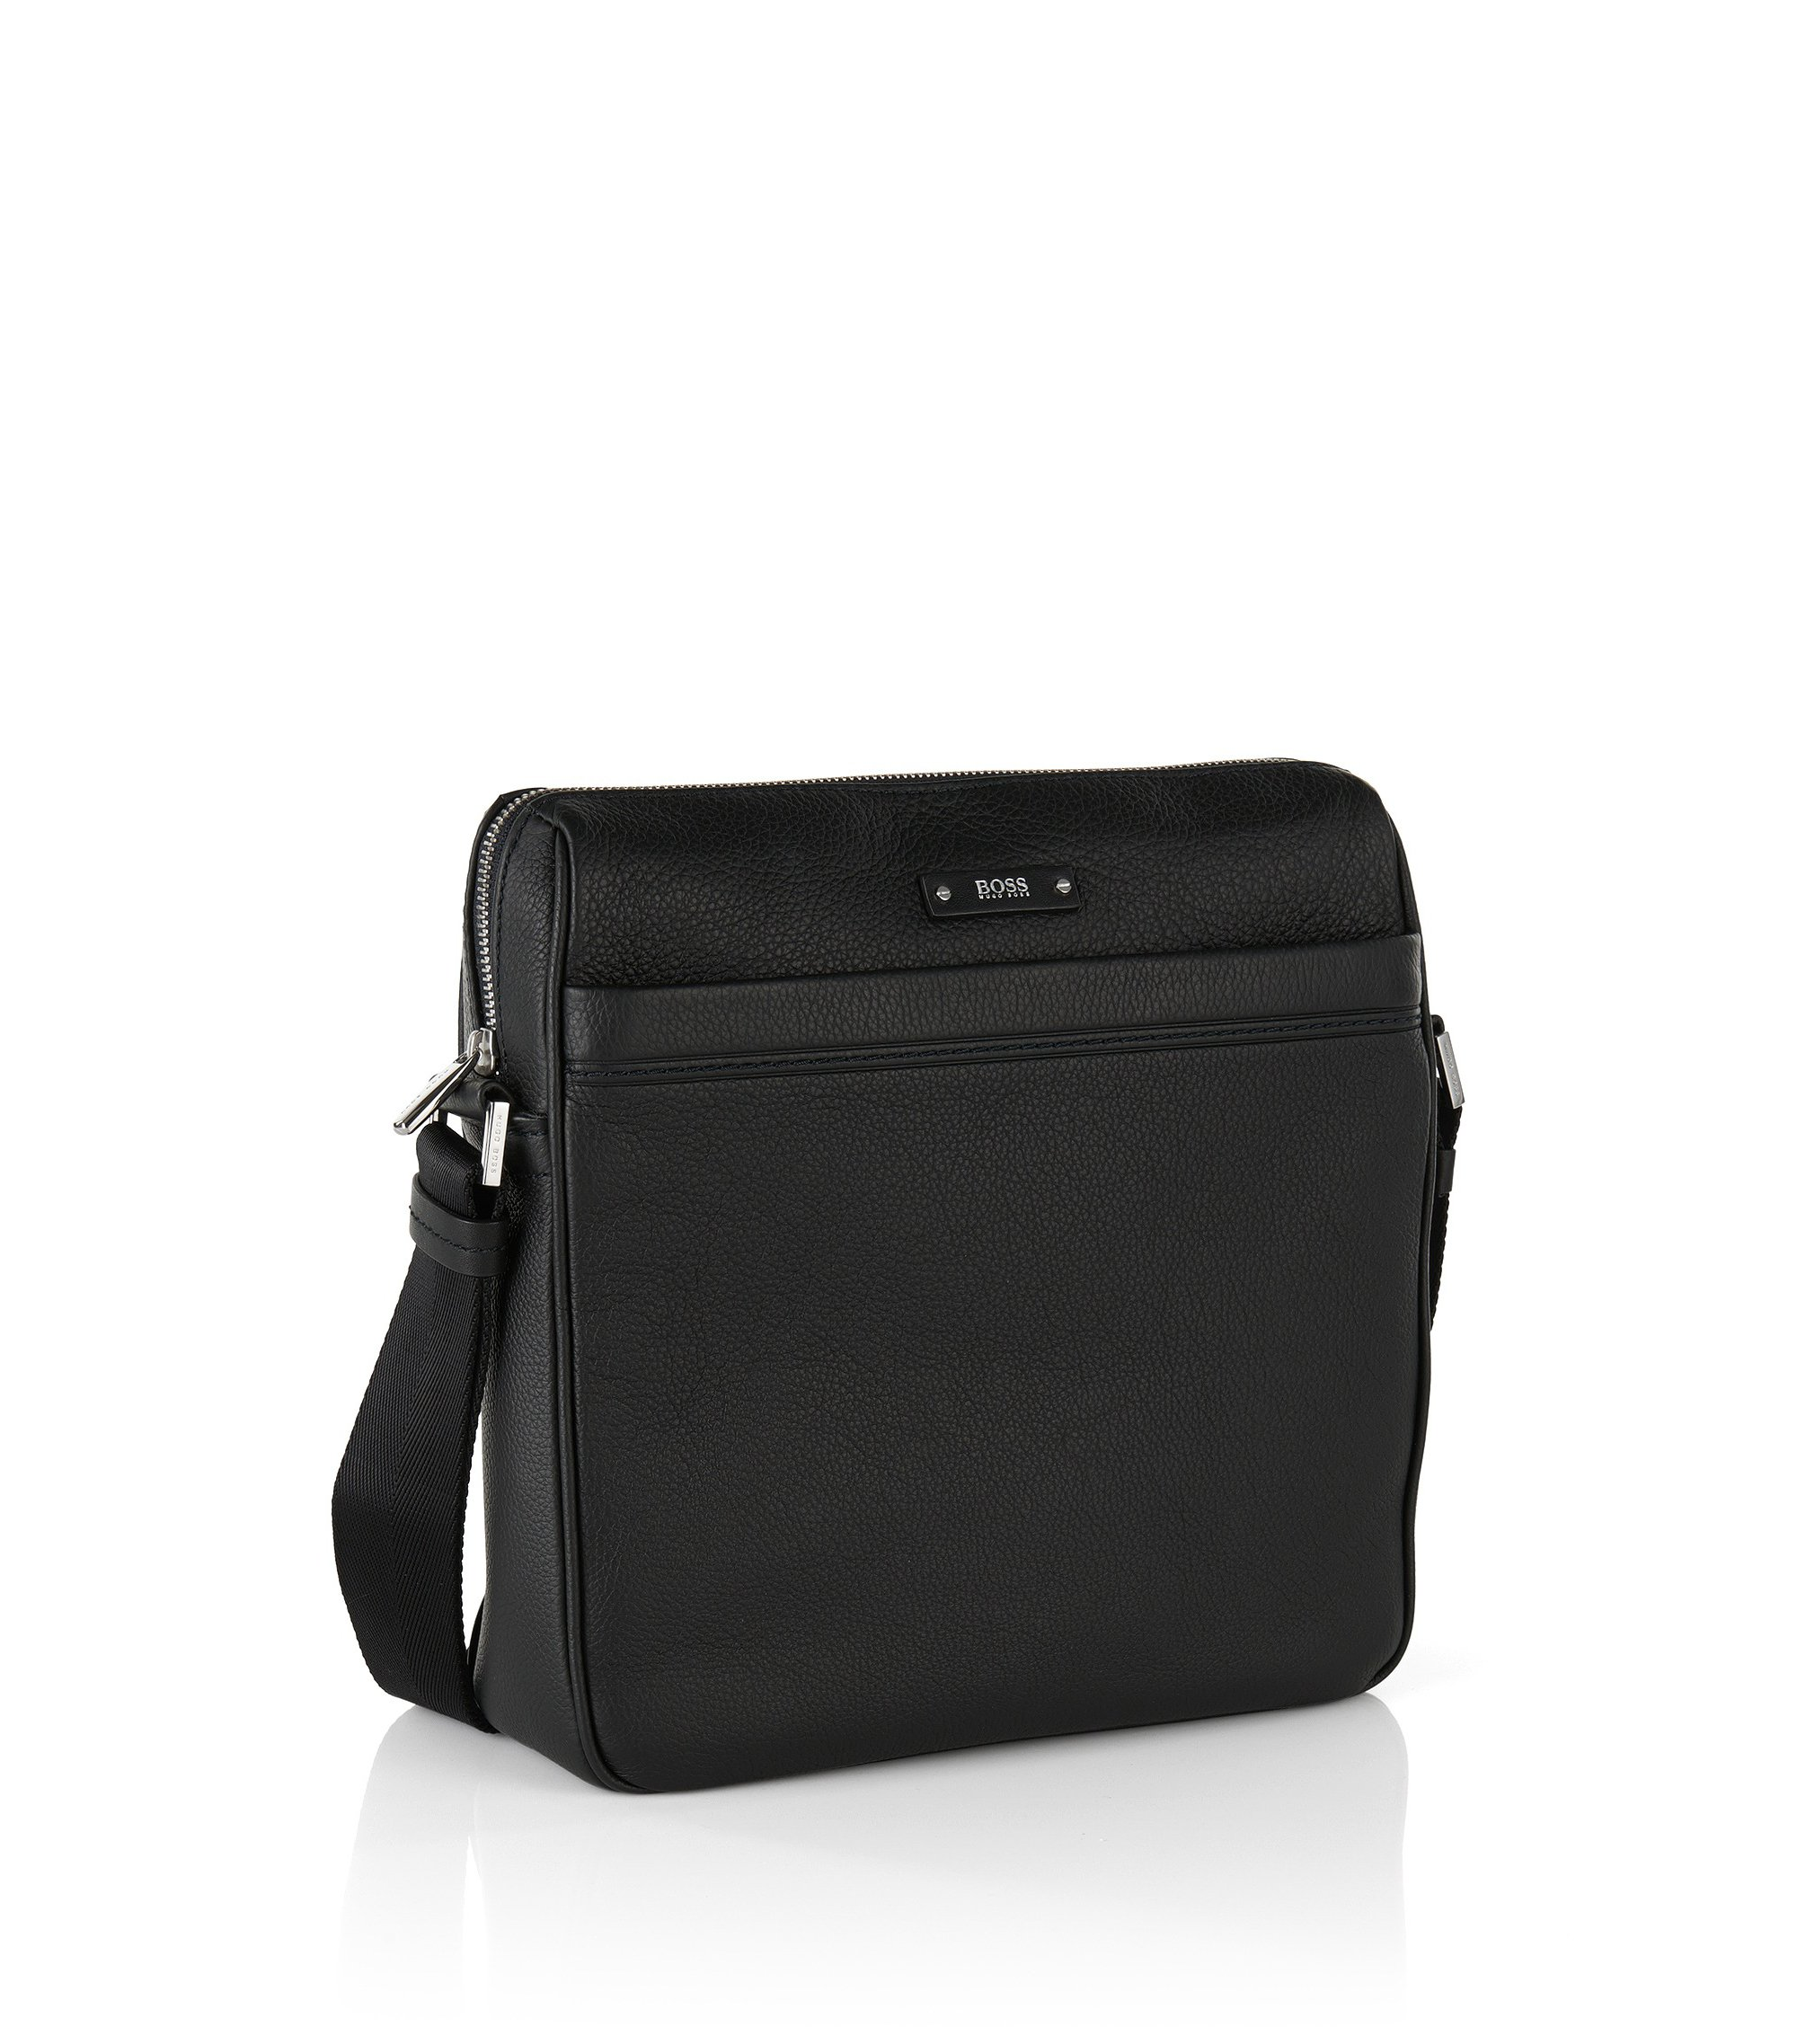 Borsa reporter in pelle martellata BOSS Travel Line, Nero